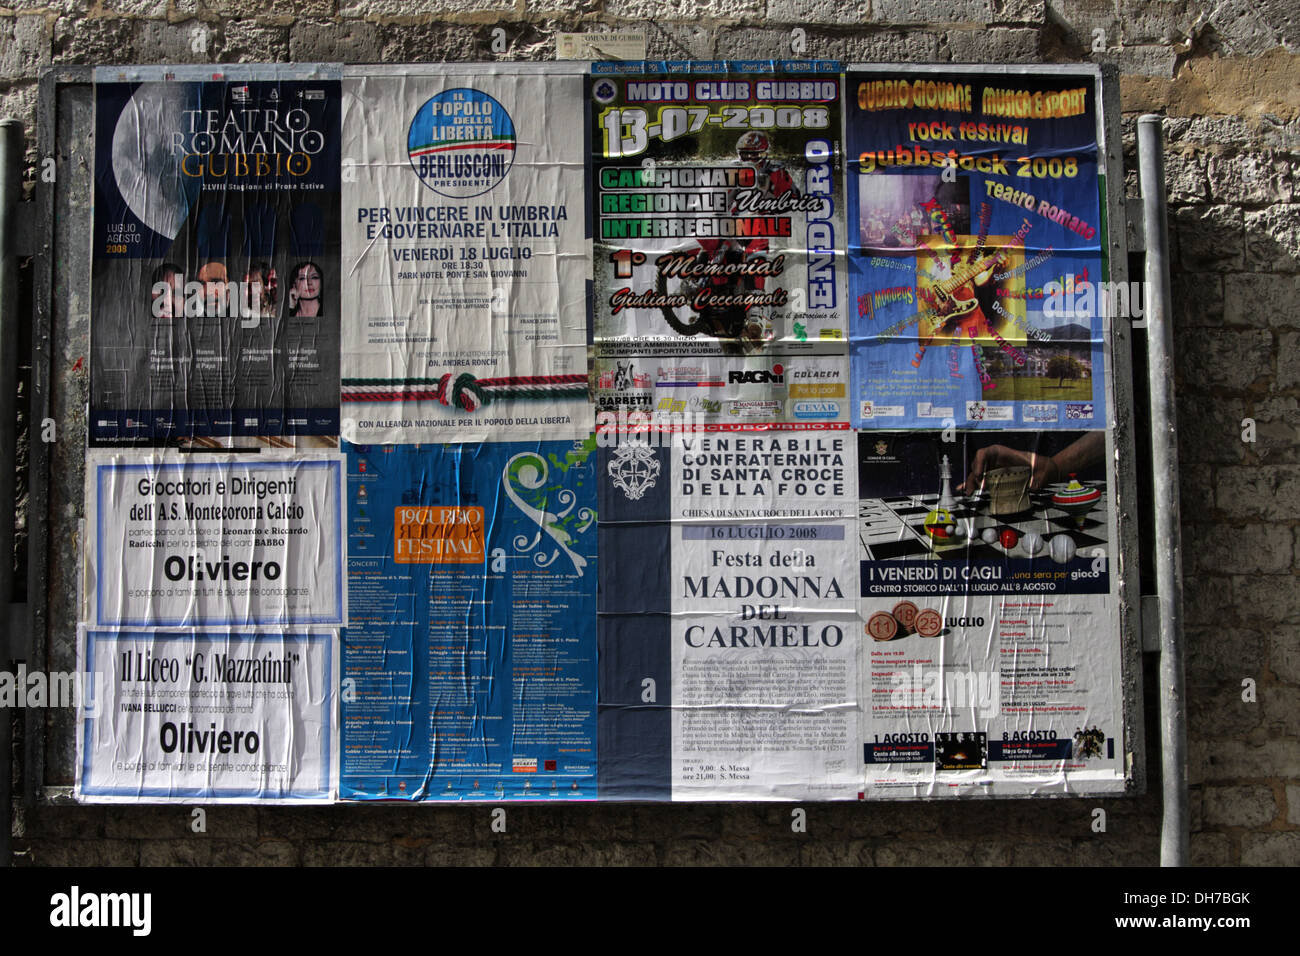 Posters on the wall of an Italian town - Stock Image